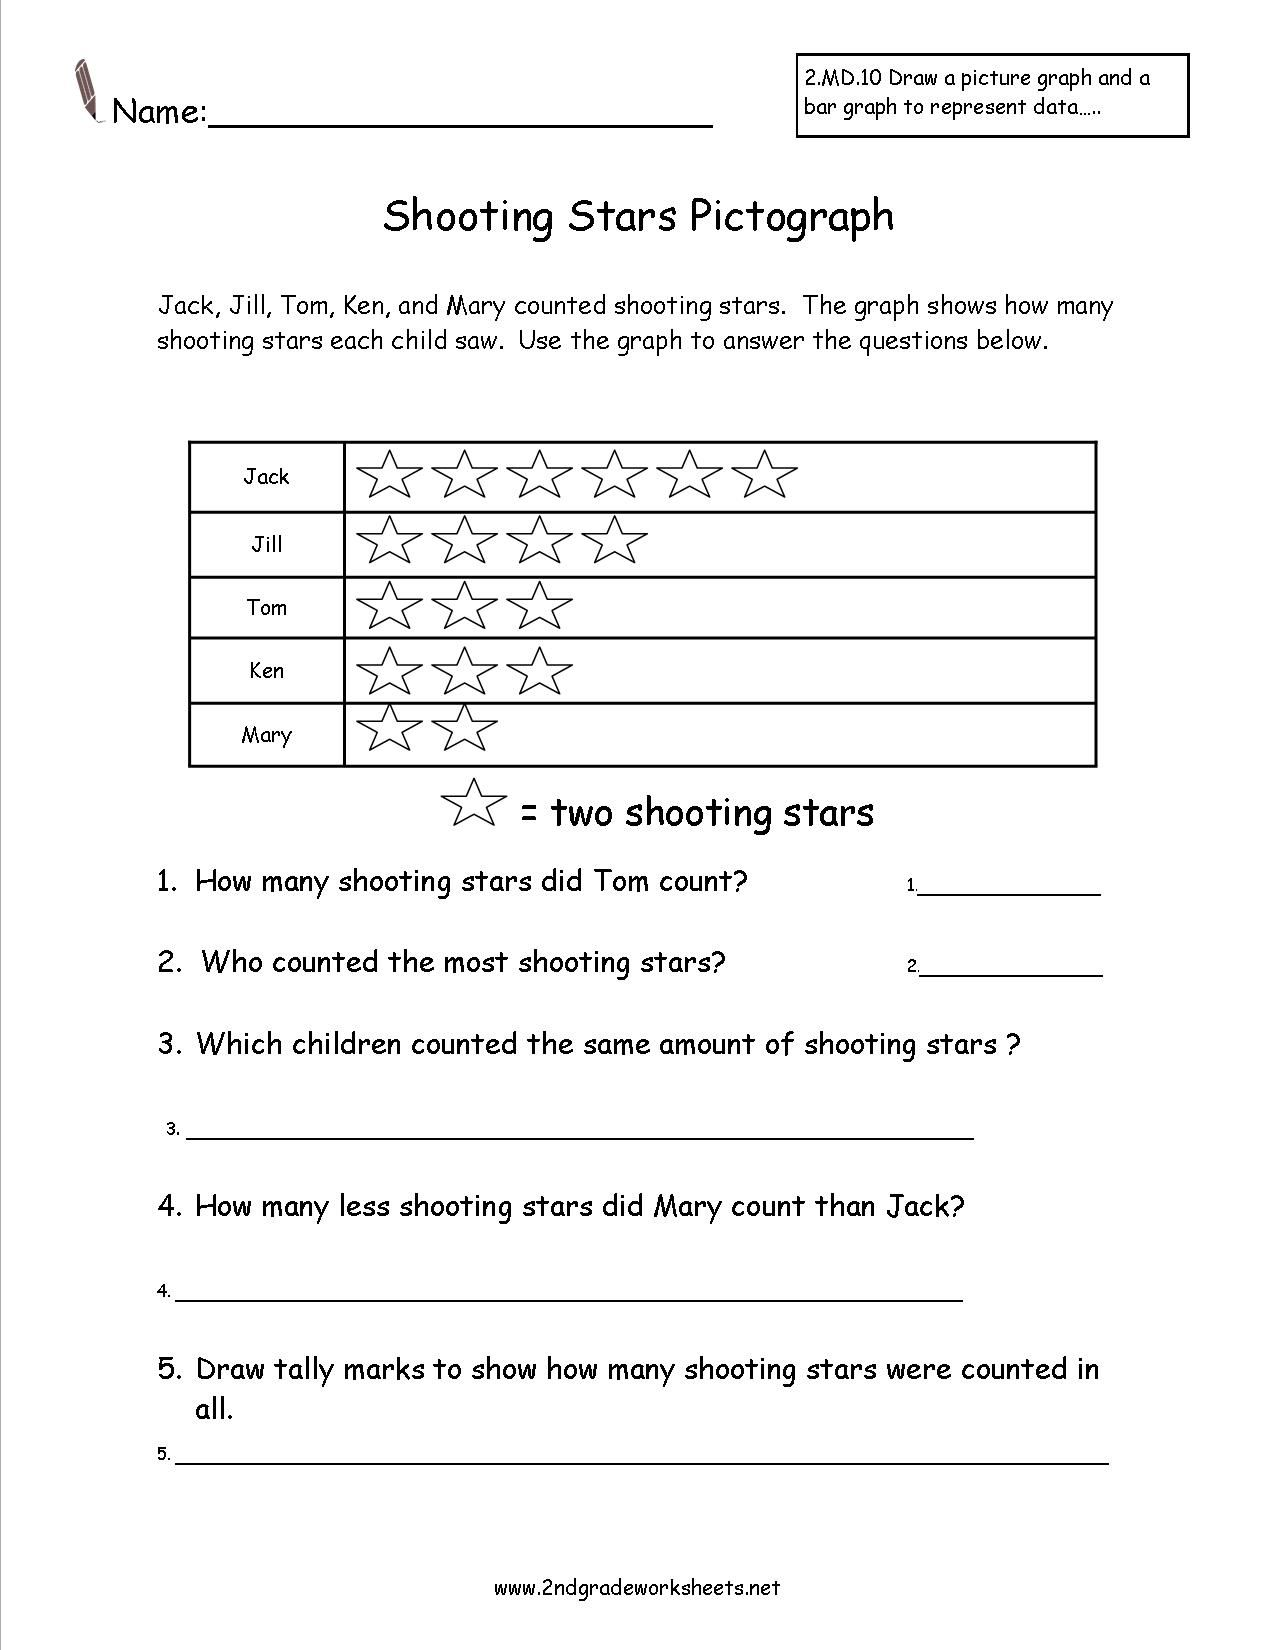 shooting stars pictograph worksheet   Third grade worksheets [ 1650 x 1275 Pixel ]